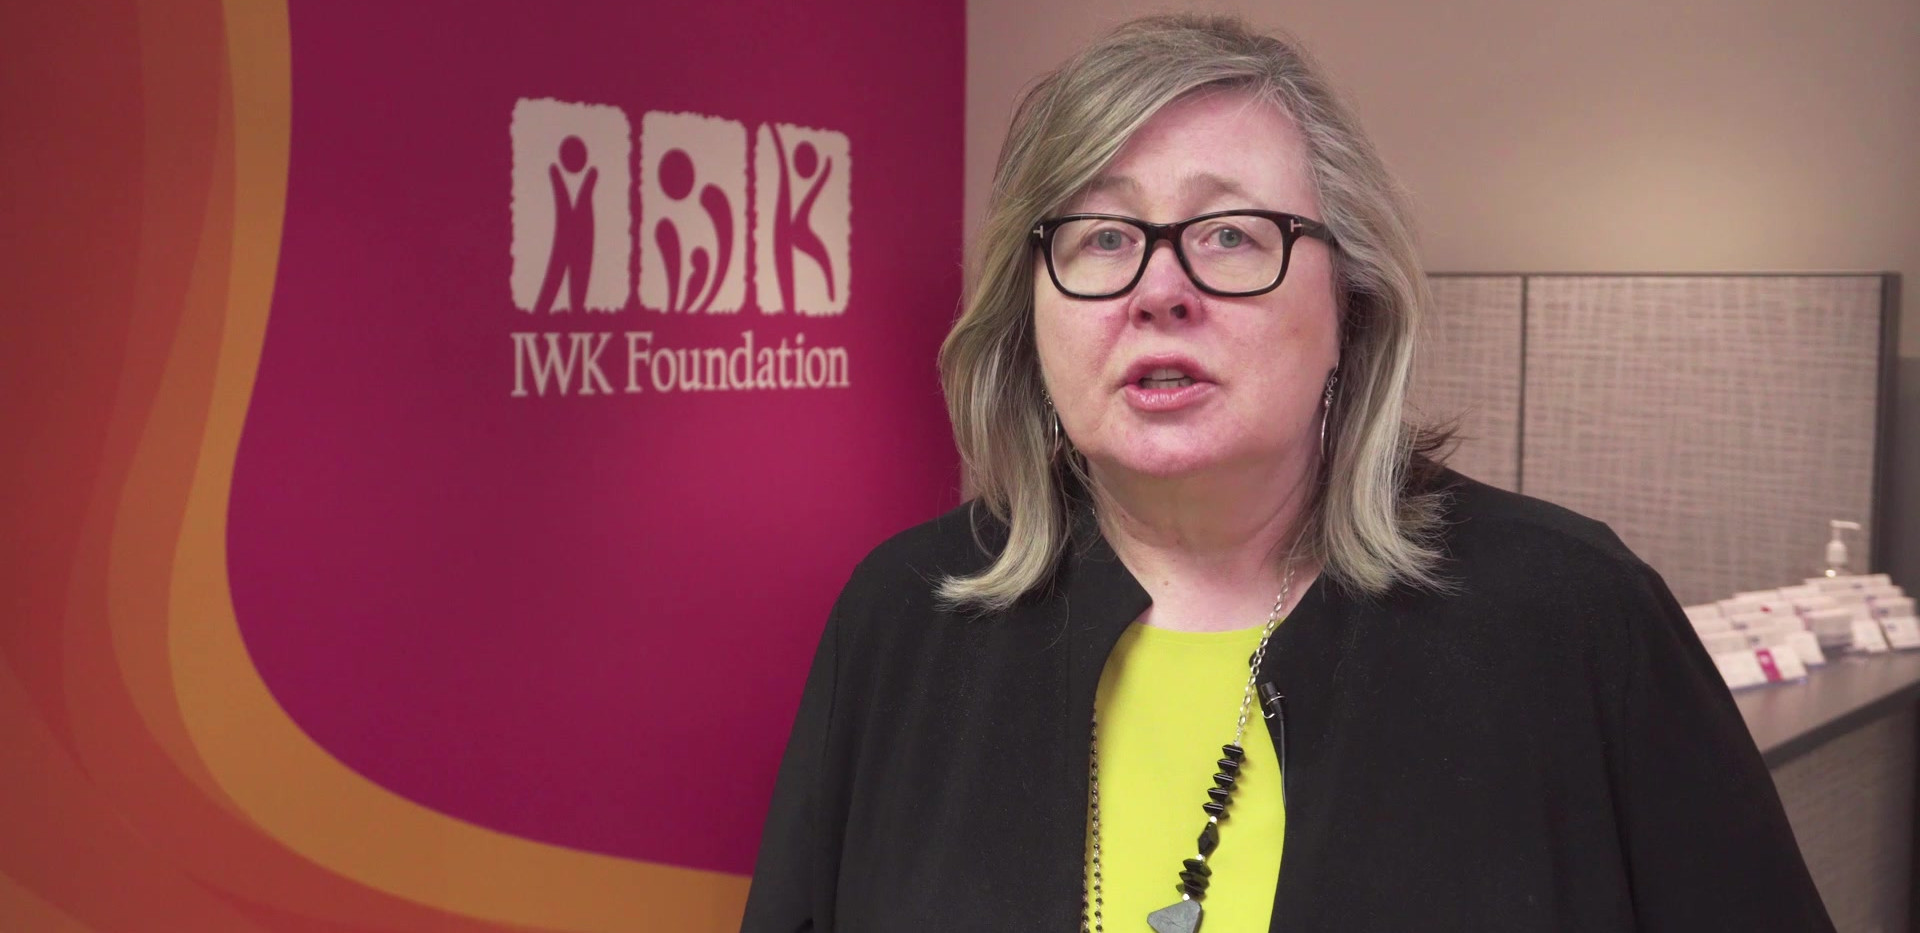 IWK Foundation - Thanks For Asking